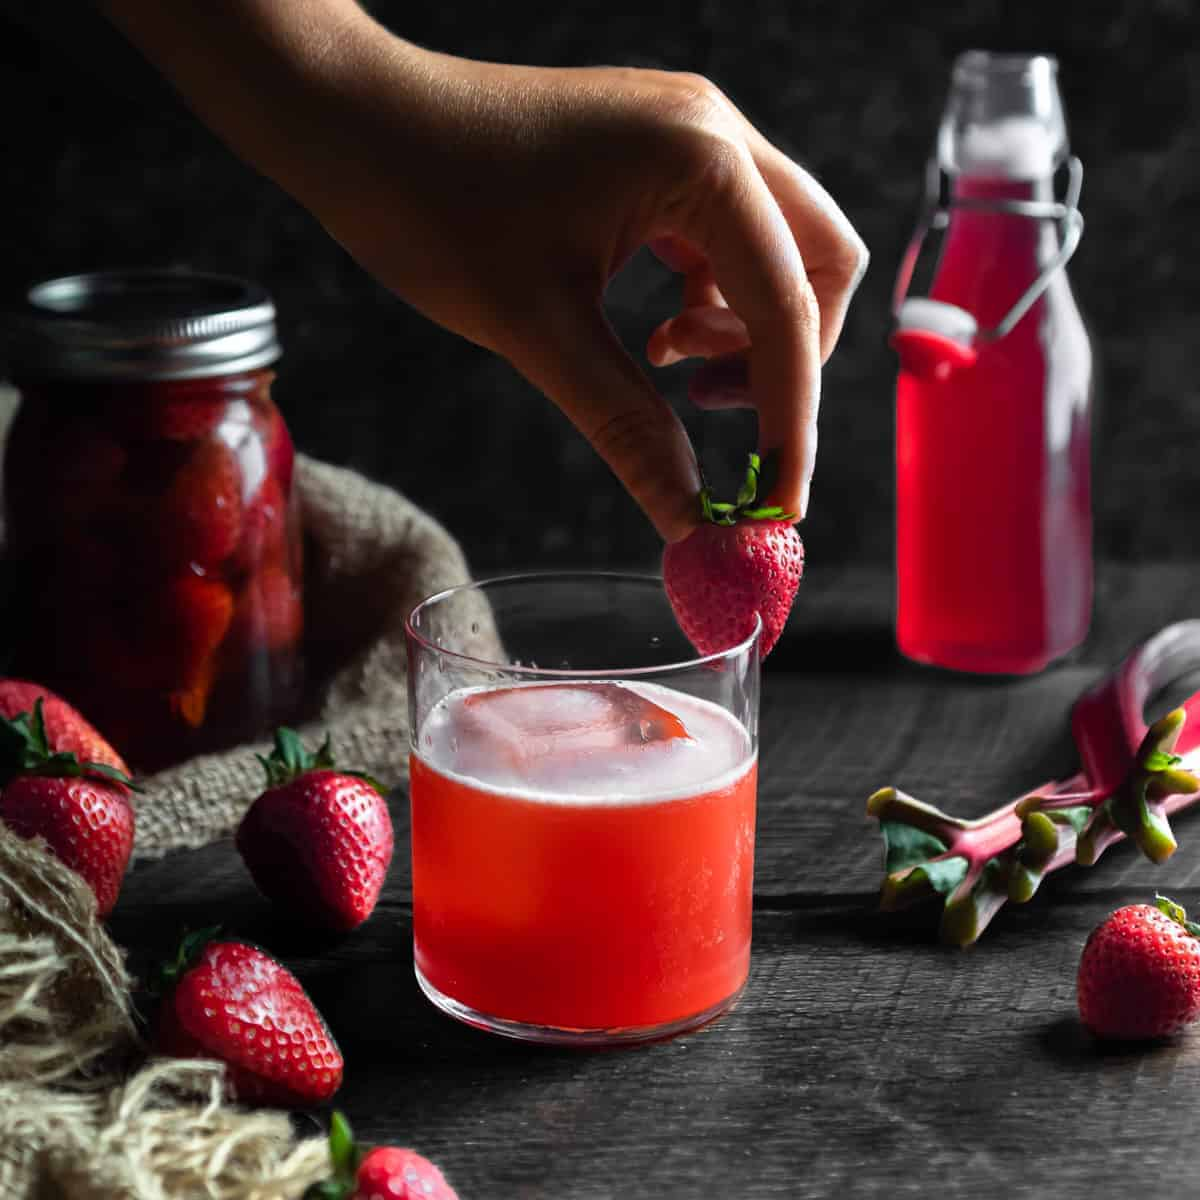 Placing a strawberry on a strawberry rhubarb whiskey sour